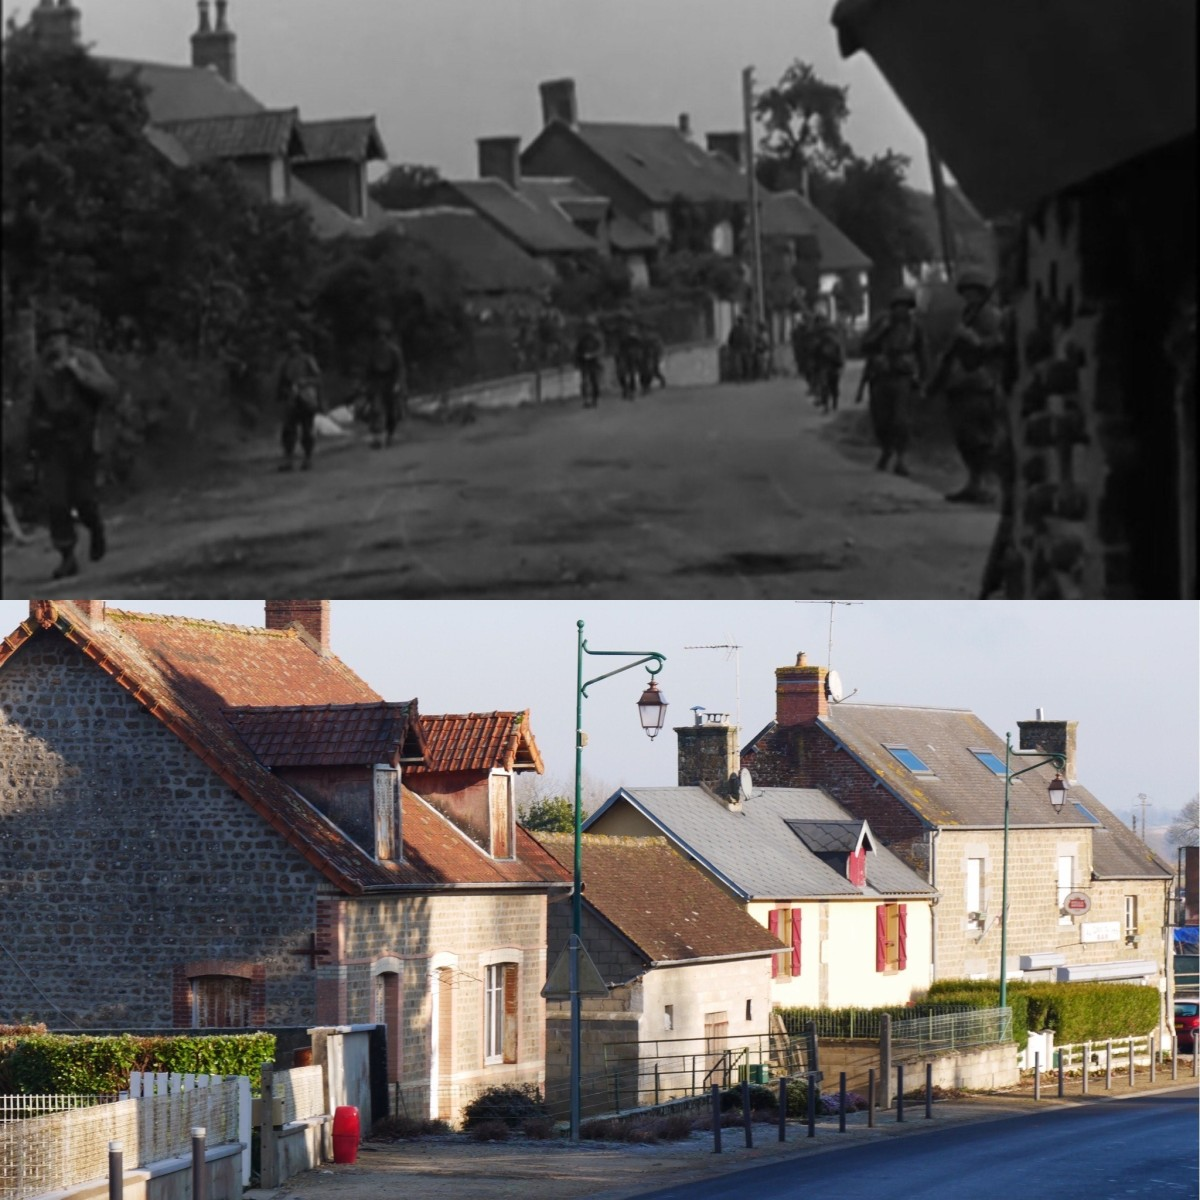 . GIs start walking back on Rue de Commerce towards the junction at the church in order to move towards Lonlay-le-Tesson.